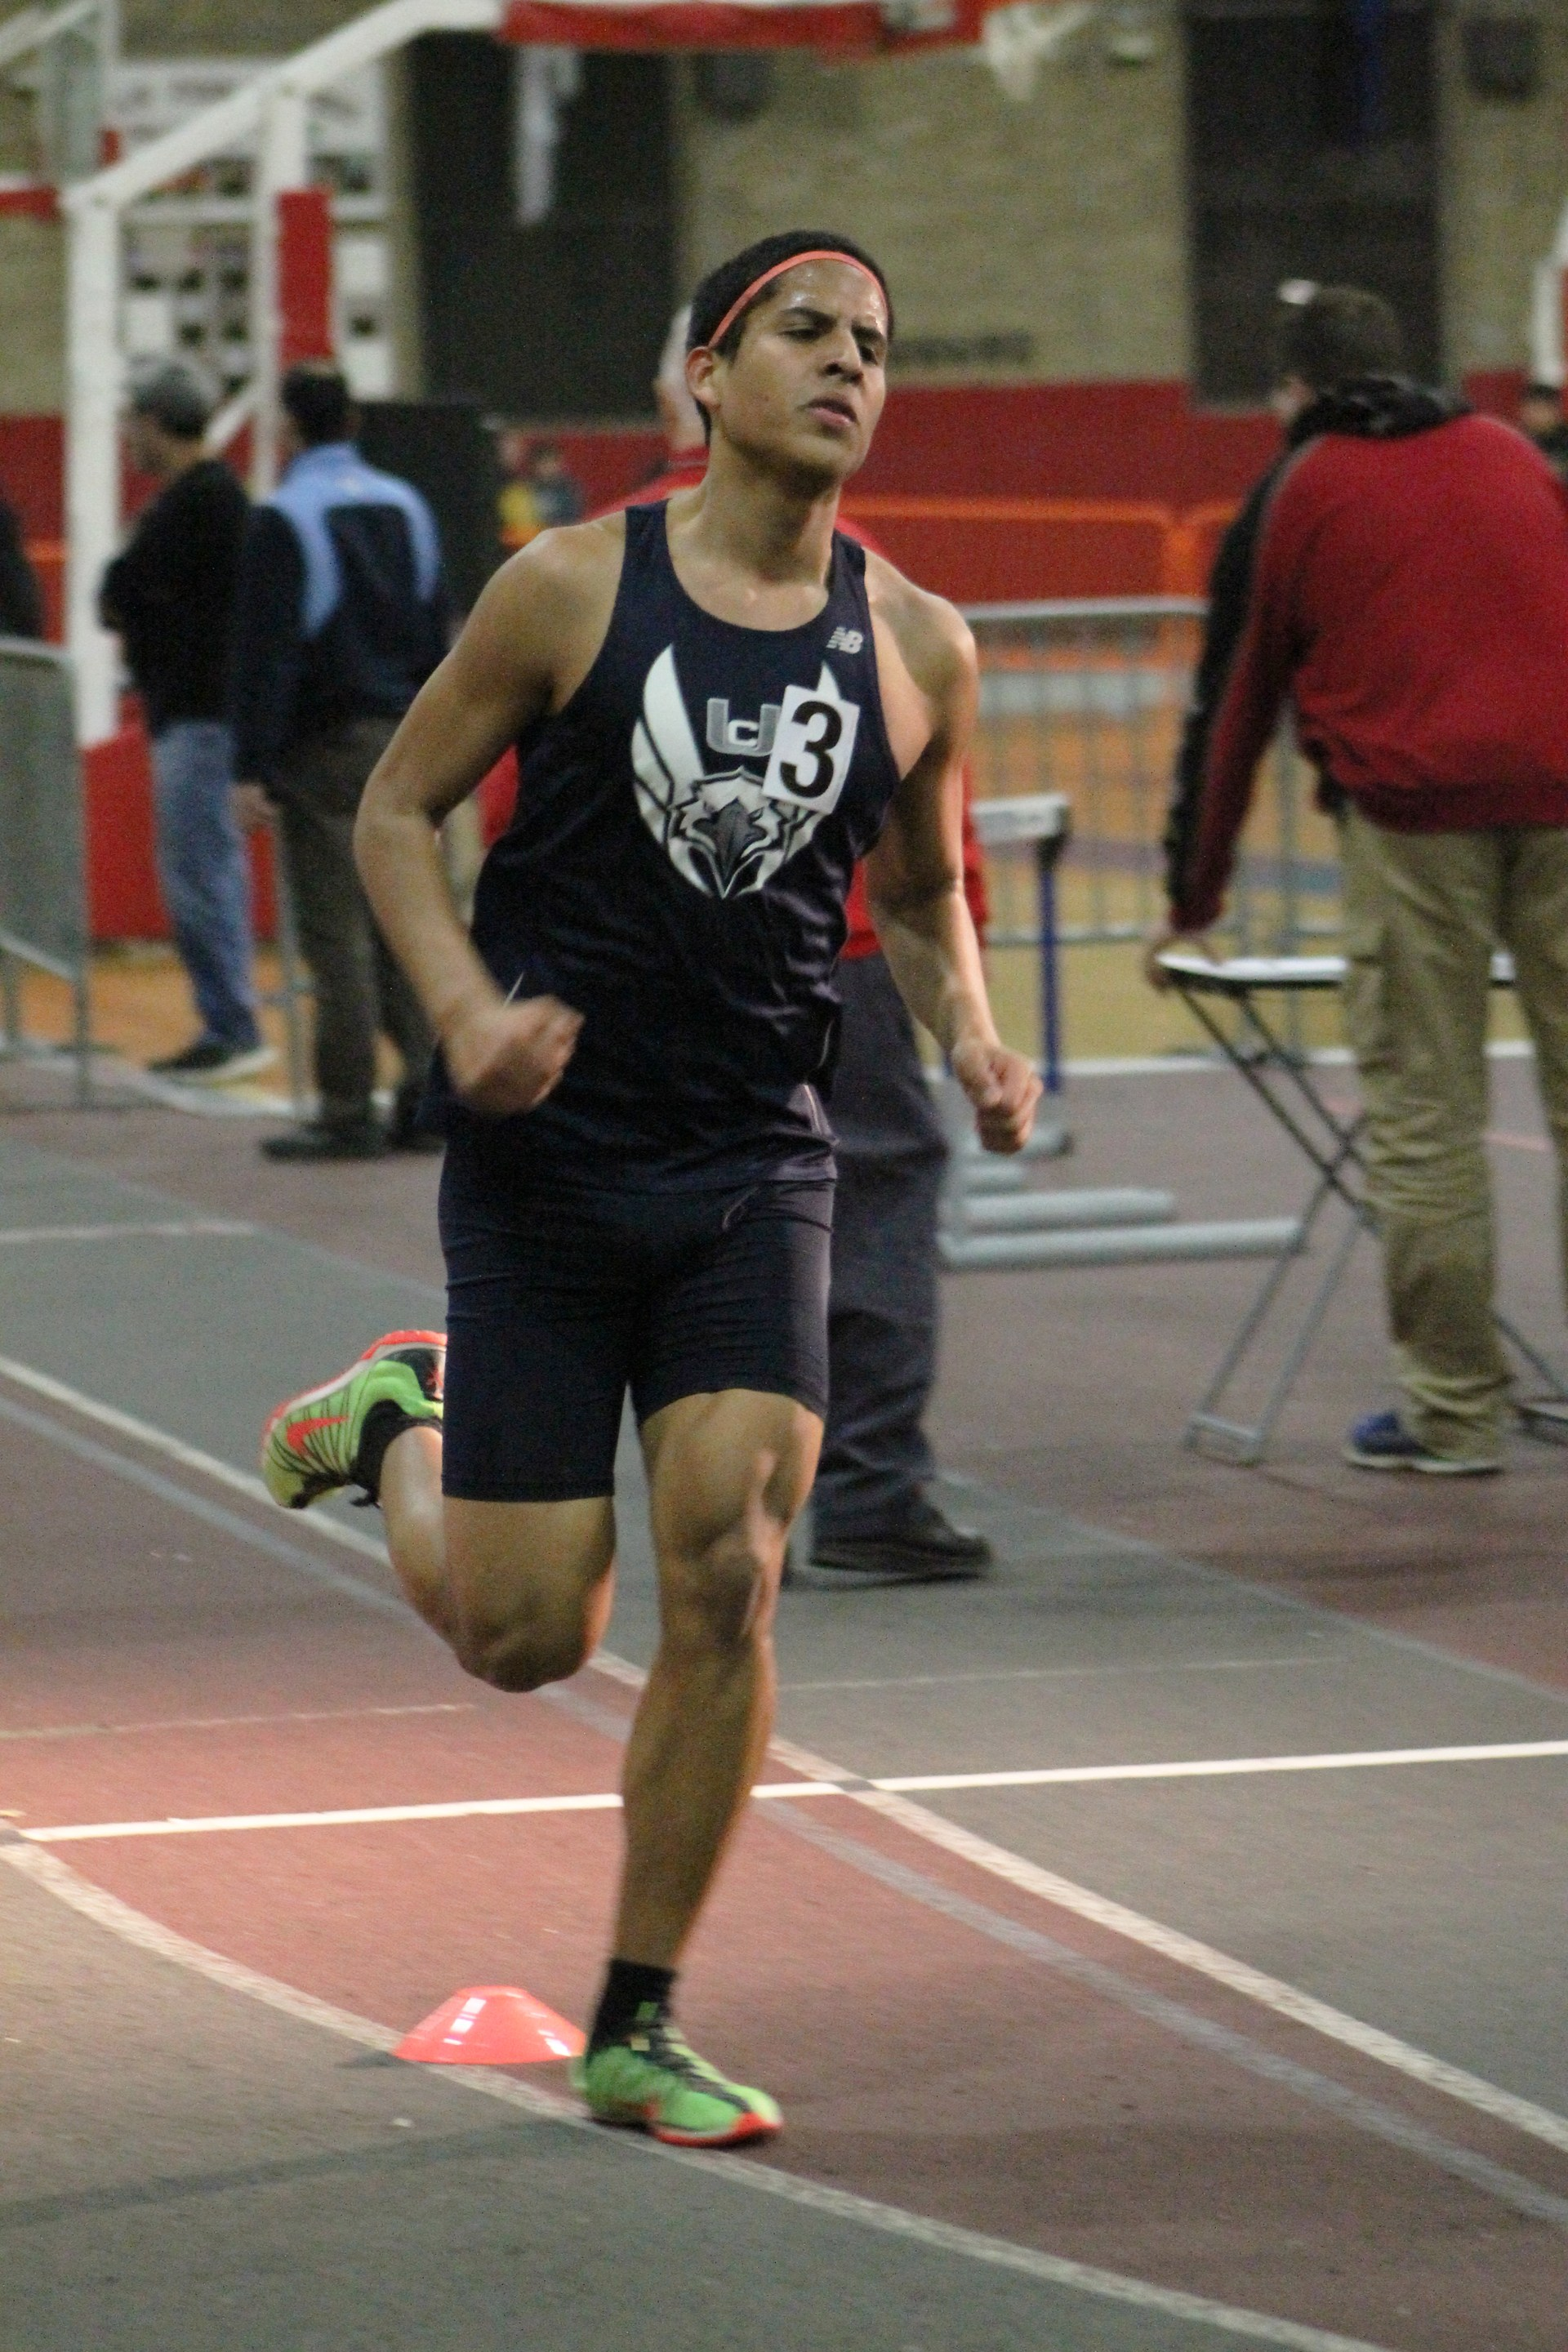 running in a meet